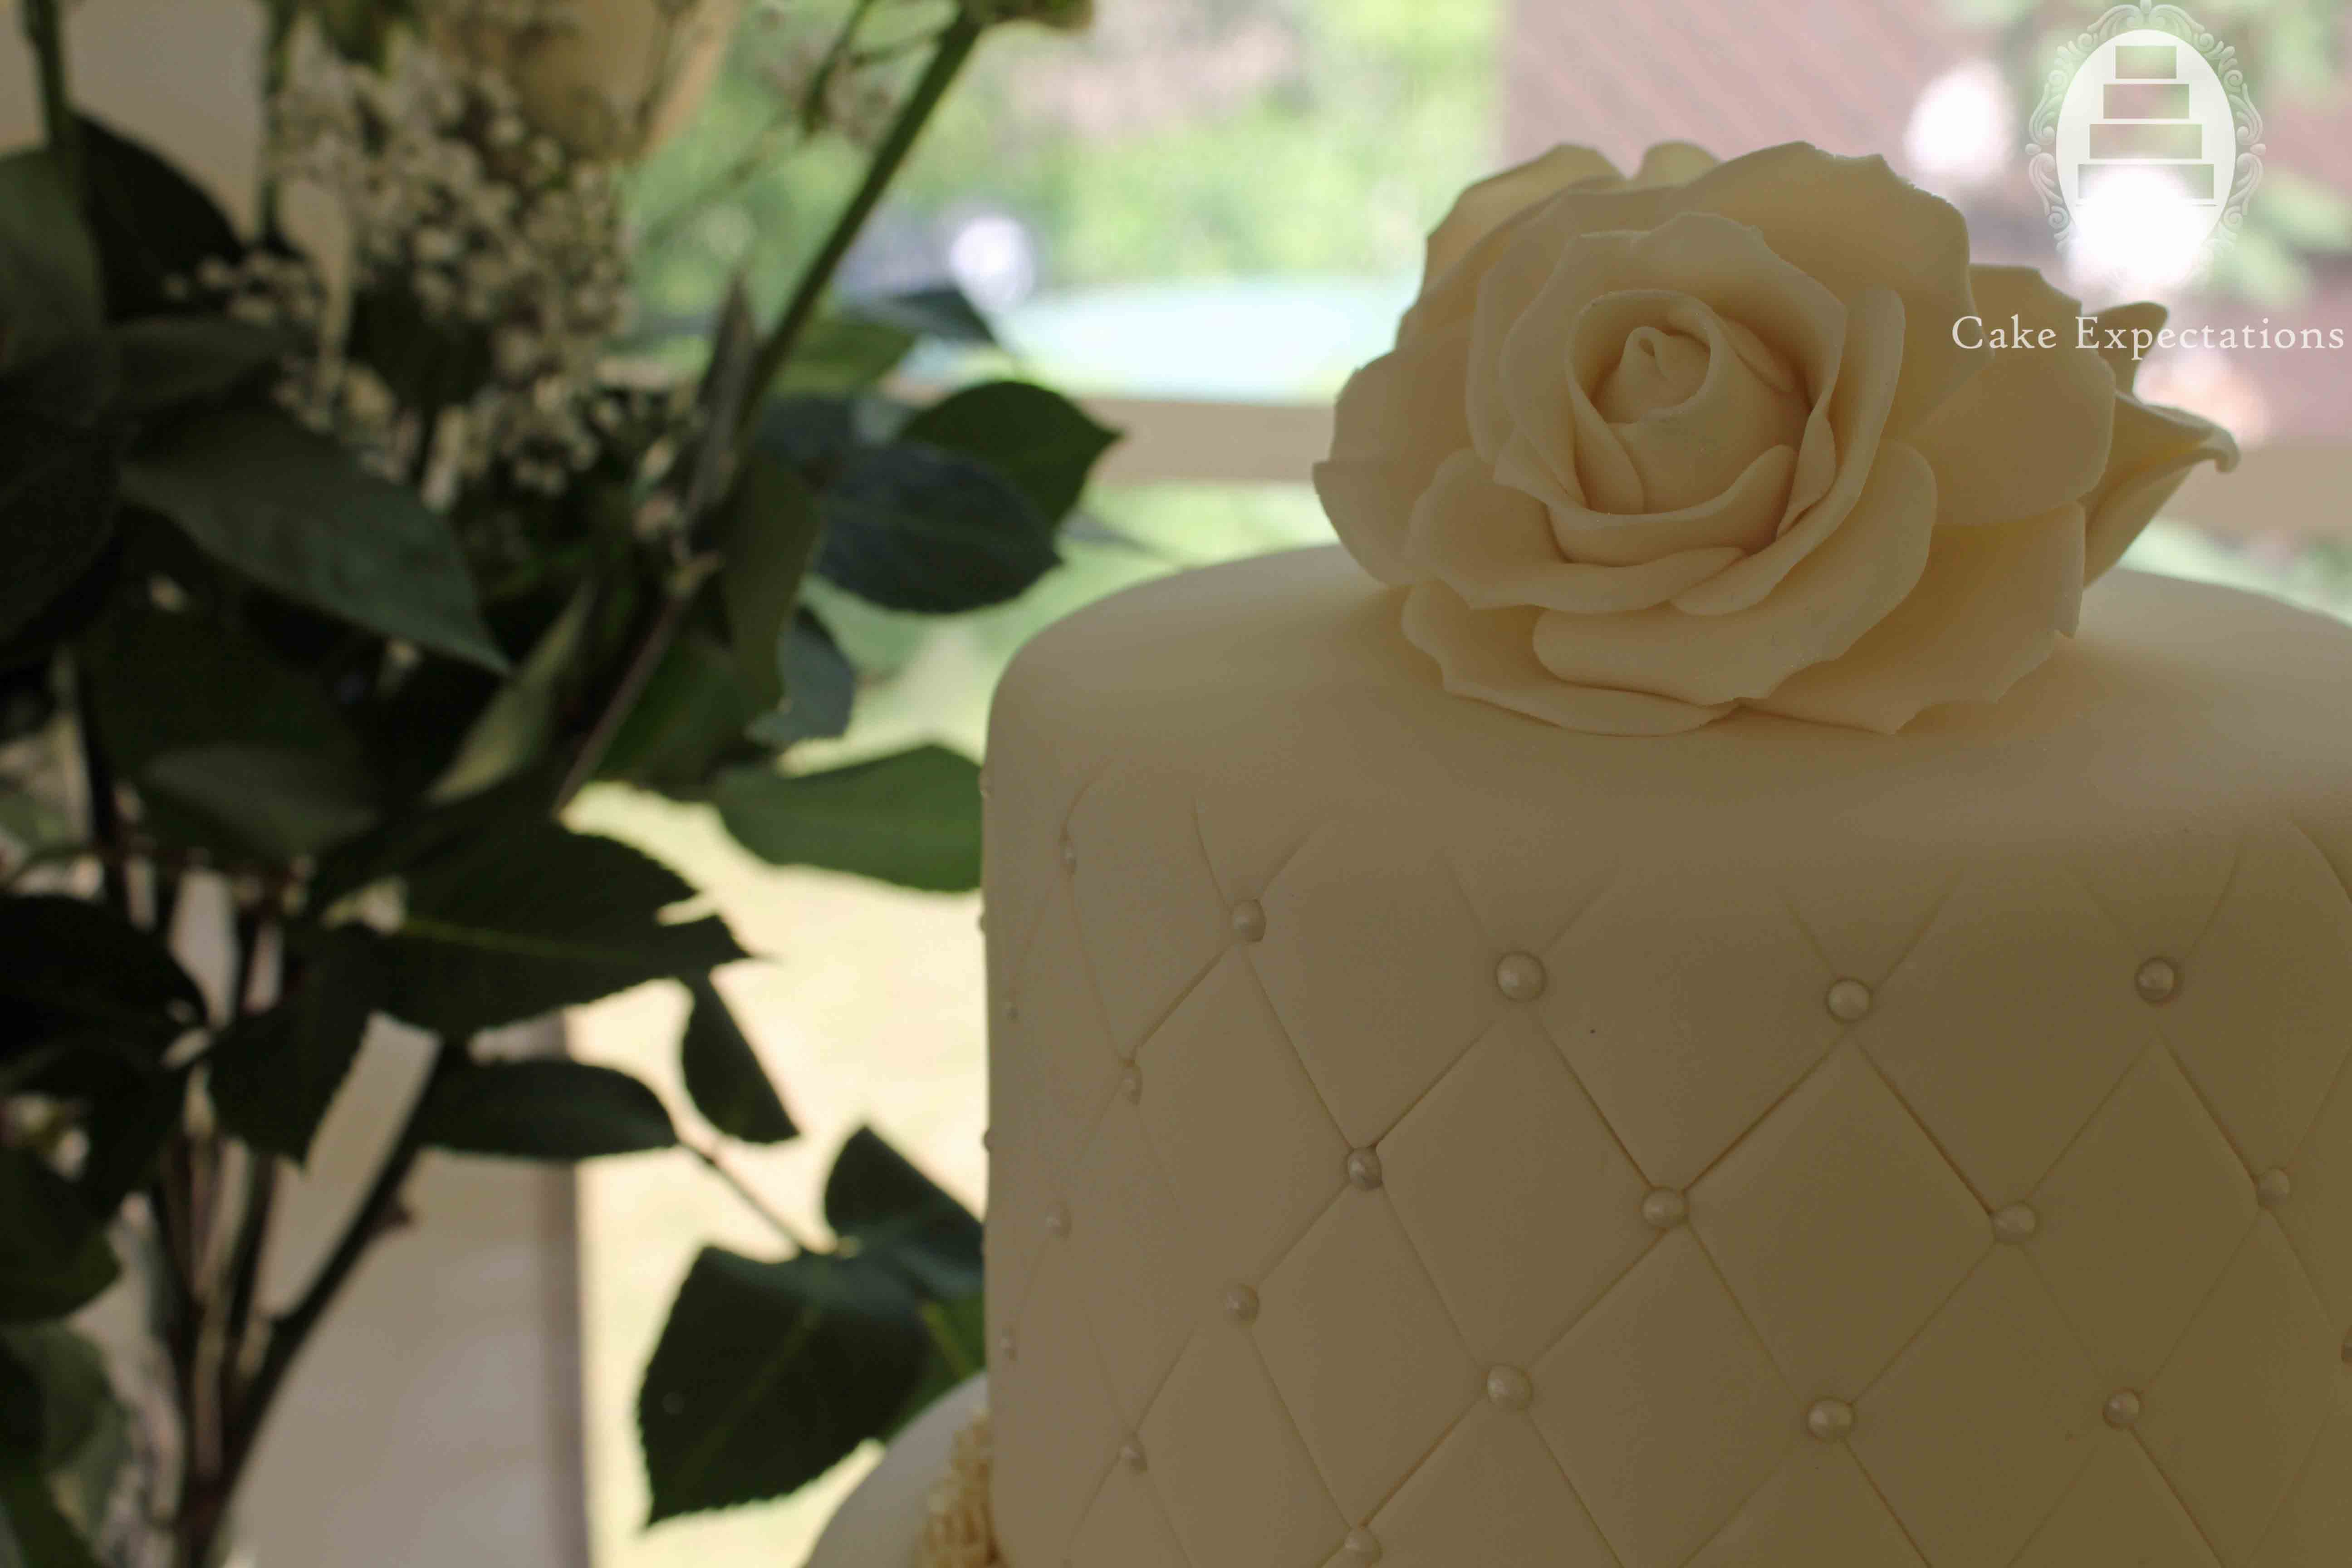 For Her Outdoor Summer Wedding By The Shores Of Lake Ontario In Whitby This Bride Wanted An Elegant Cake Design With Lots Ivory Roses To Match